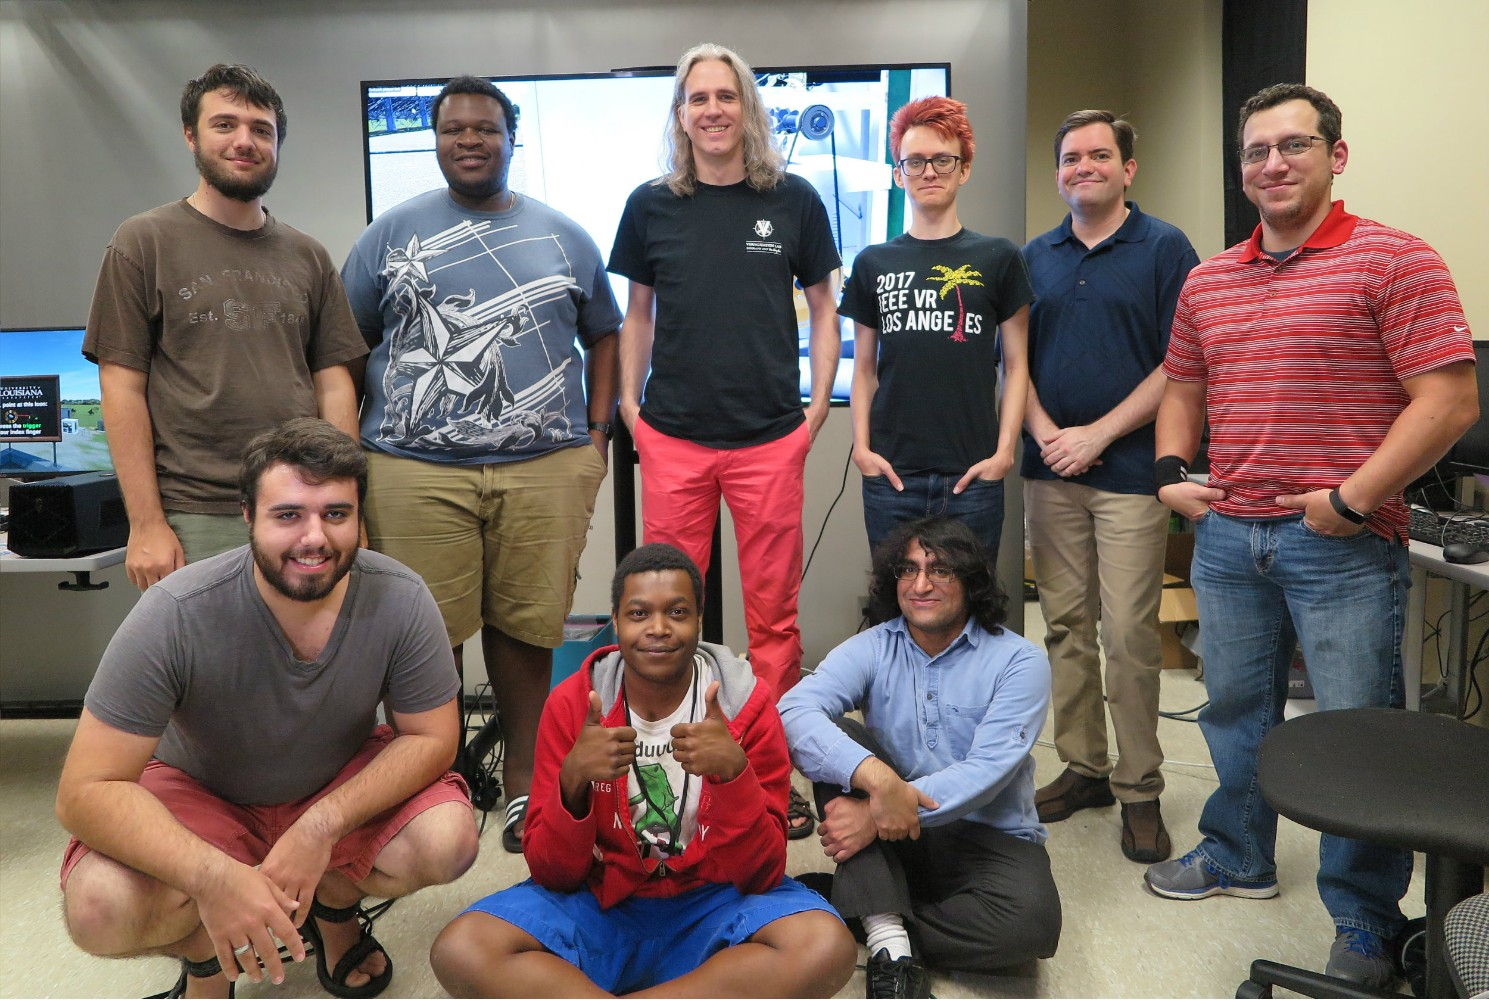 CACS VR Lab Group